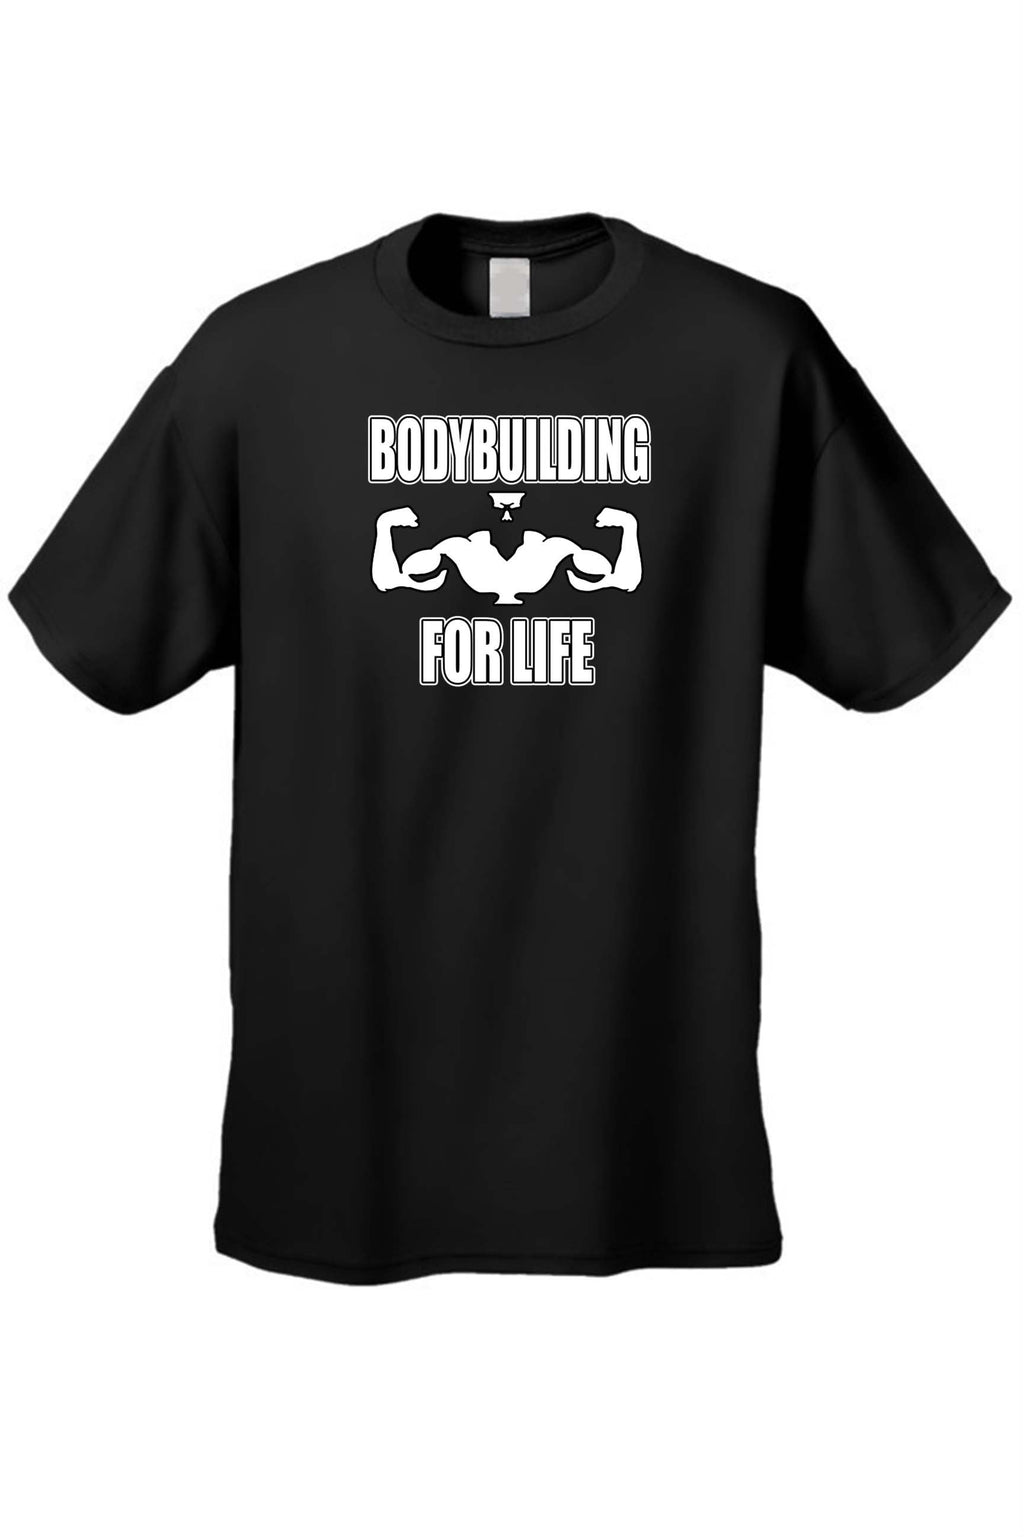 Men's Bodybuilding For Life Workout Fitness Short Sleeve T-shirt